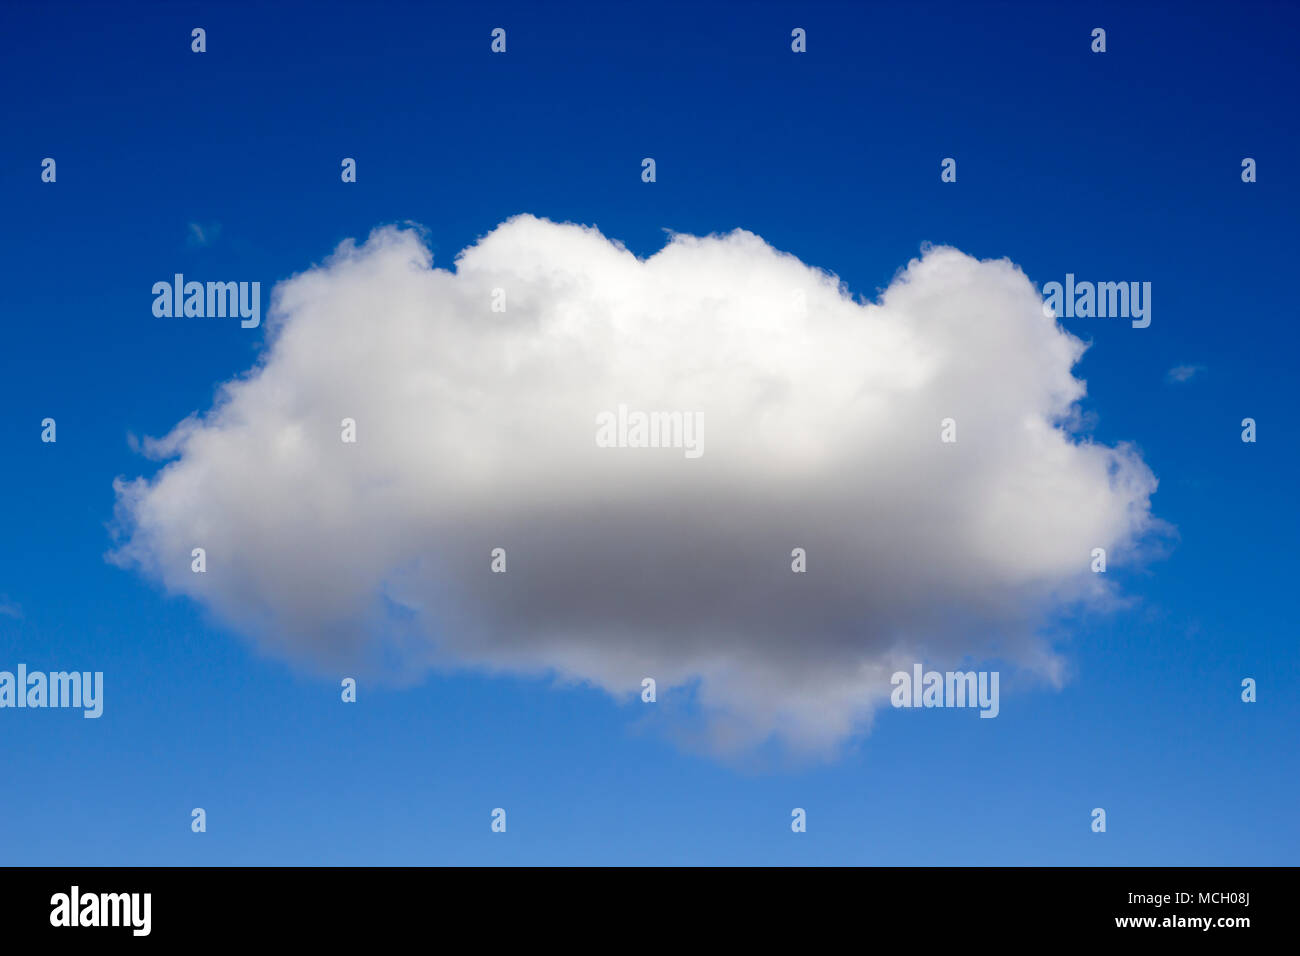 Single fluffy cloud against blue sky - Stock Image